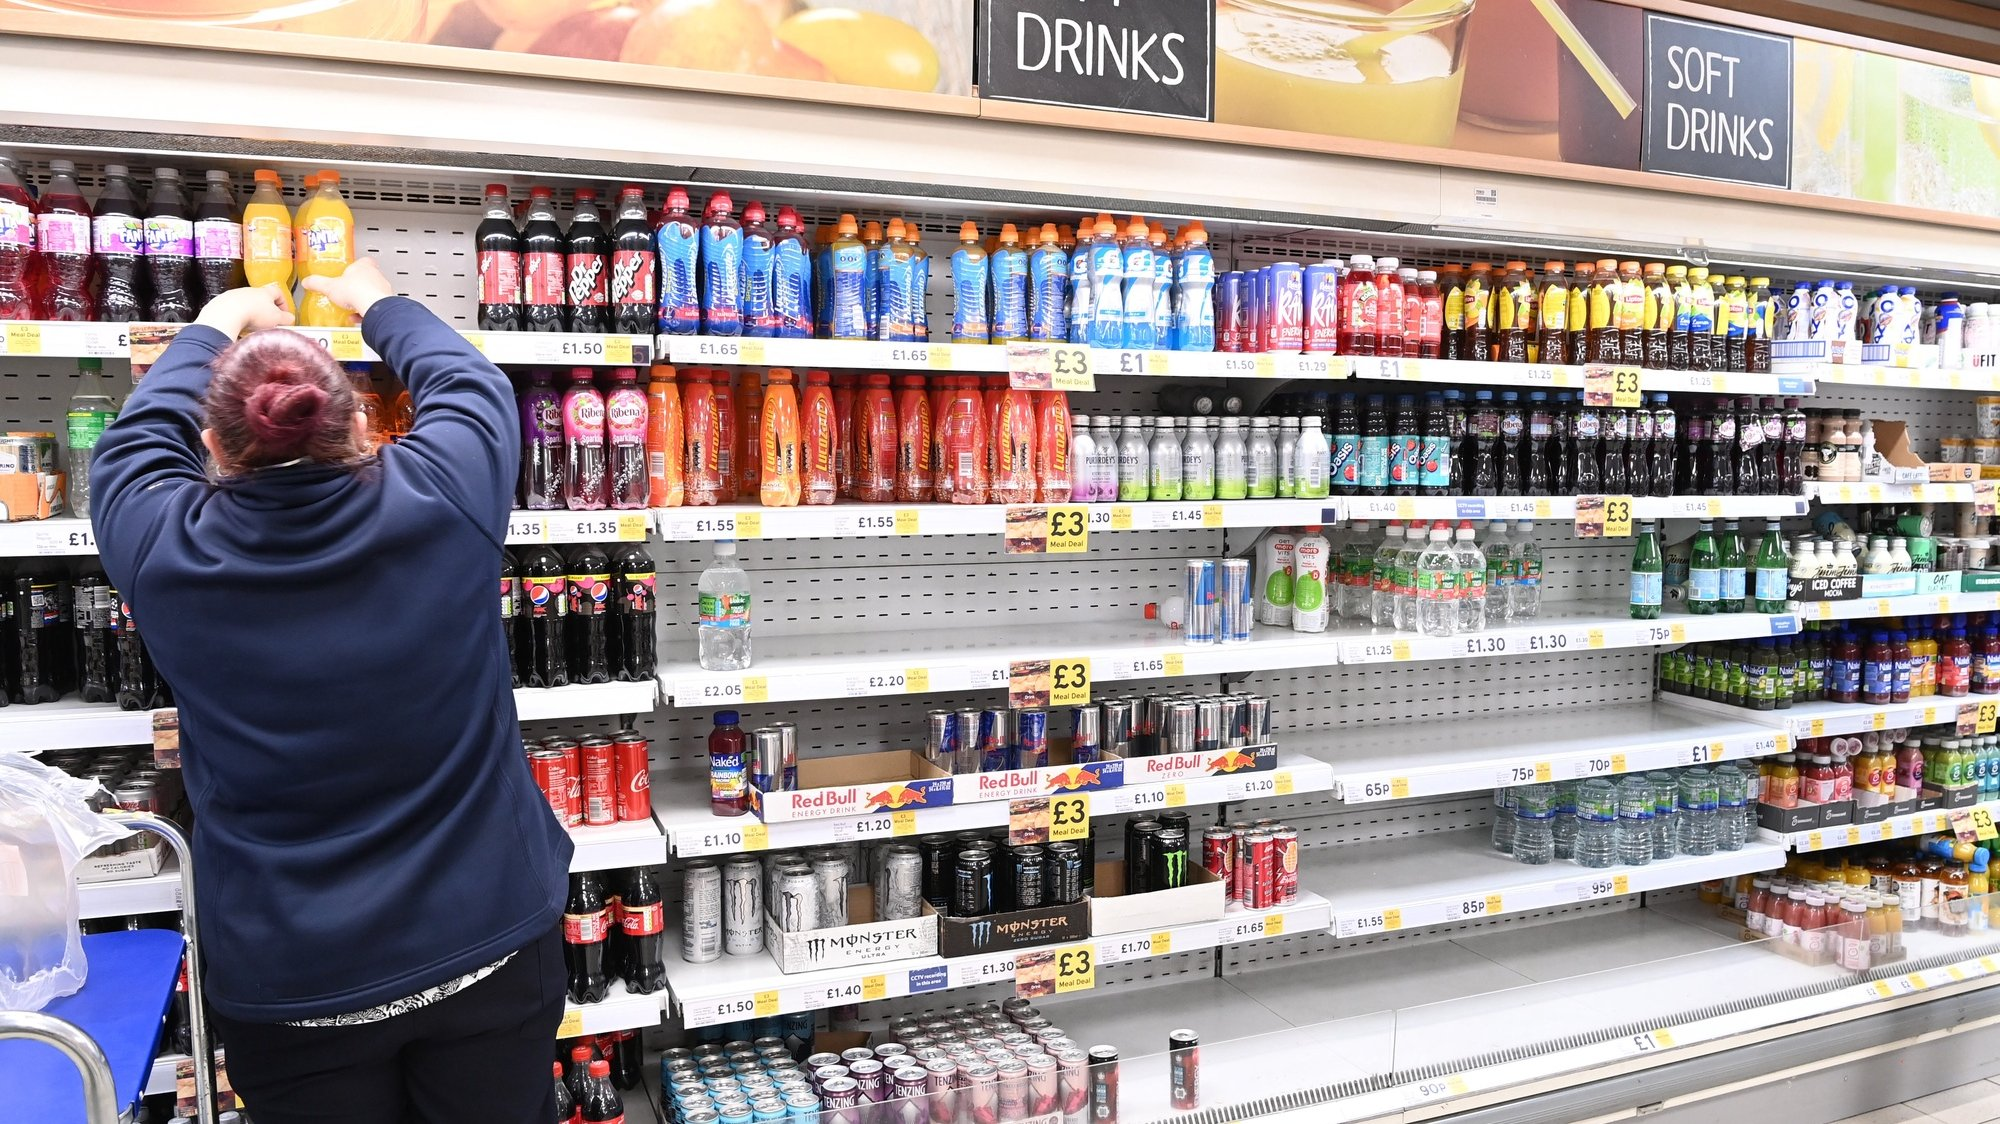 epa09358554 A supermarket worker stocks soft drinks in London, Britain, 22 July 2021. British supermarkets are struggling to stock shelves as staff shortages take their toll due to the so called 'pingdemic'. With so many staff going into self isolation after being pinged by the NHS app, supermarkets are now under increasing pressure to keep shelves fully stocked. The British government is being urged to allow supermarket staff to be exempt from self-isolation rules.  EPA/FACUNDO ARRIZABALAGA